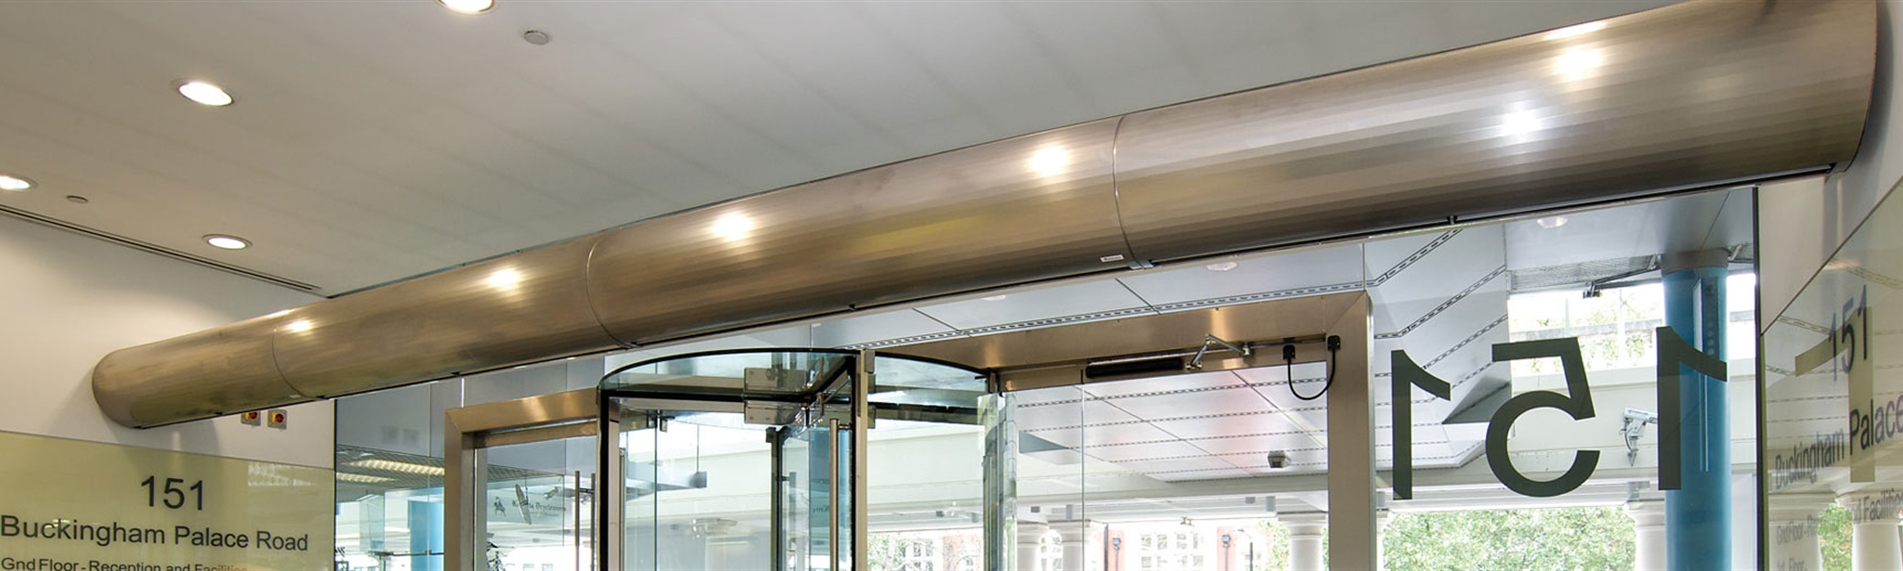 JS Air Curtains goes to great lengths at 151 Buckingham Palace Road